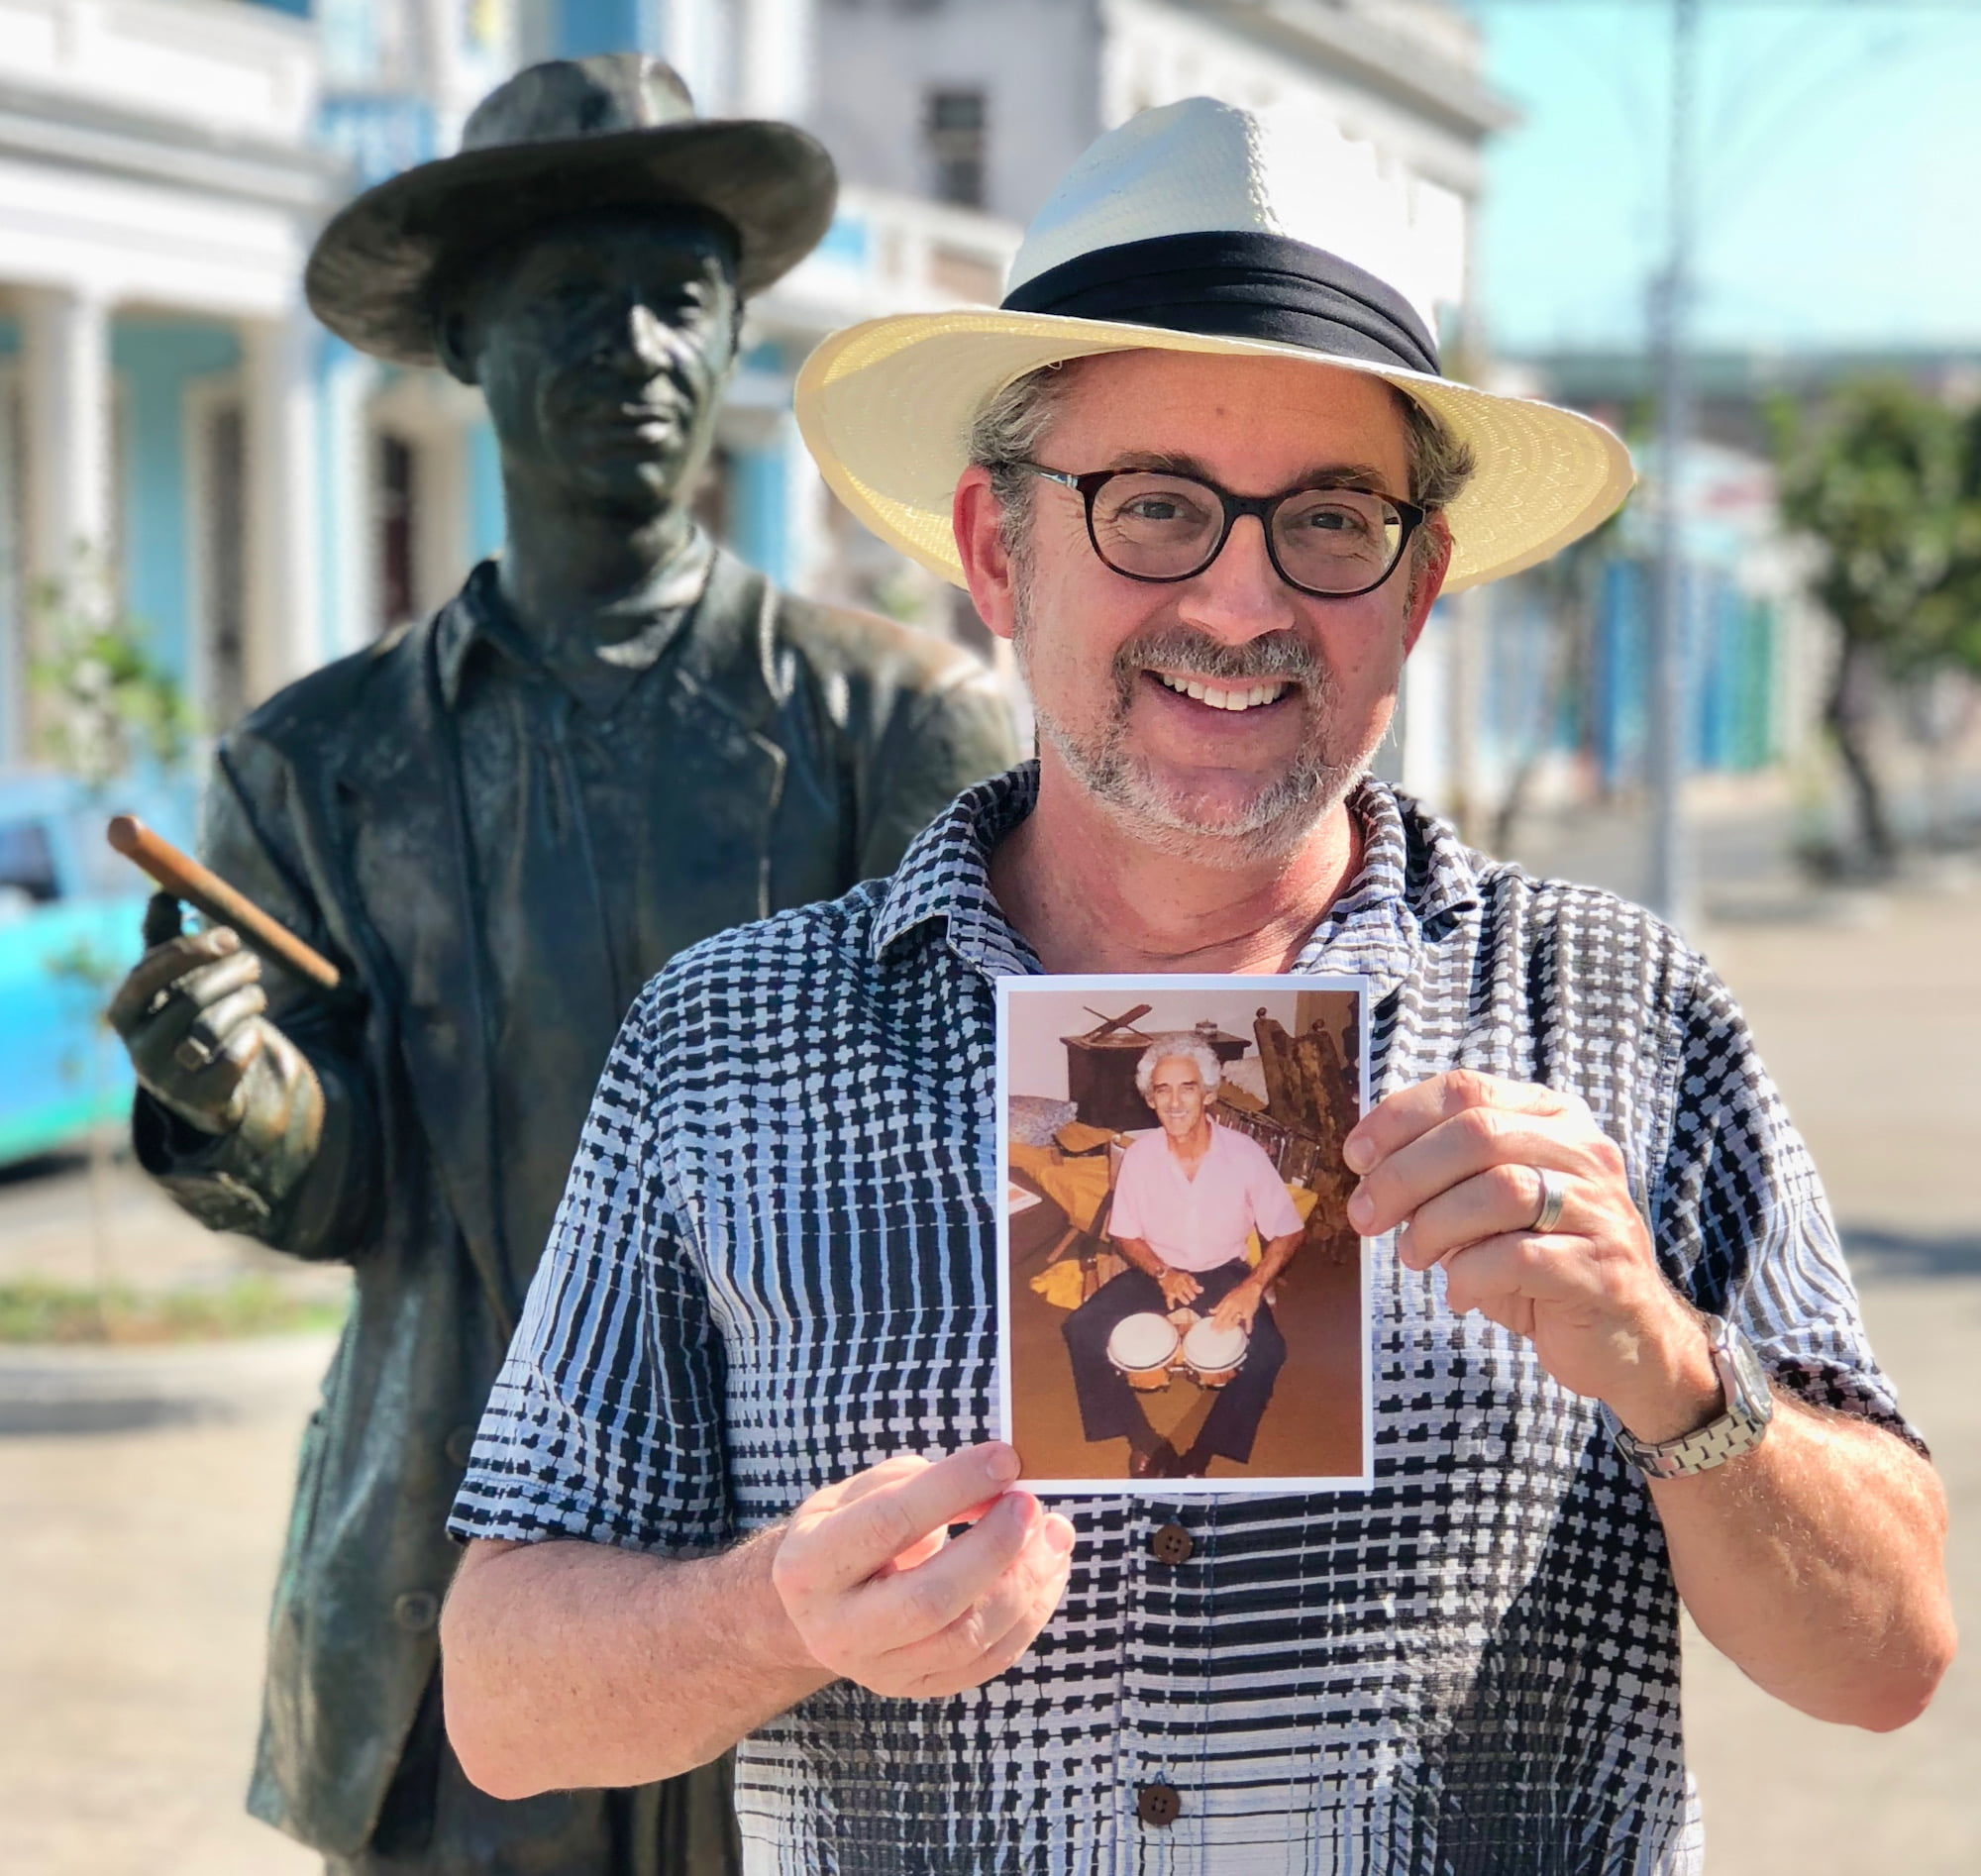 Cuba - Miguel holding a photo of his father at the statue of singer Beny Moré - Cienfuegos